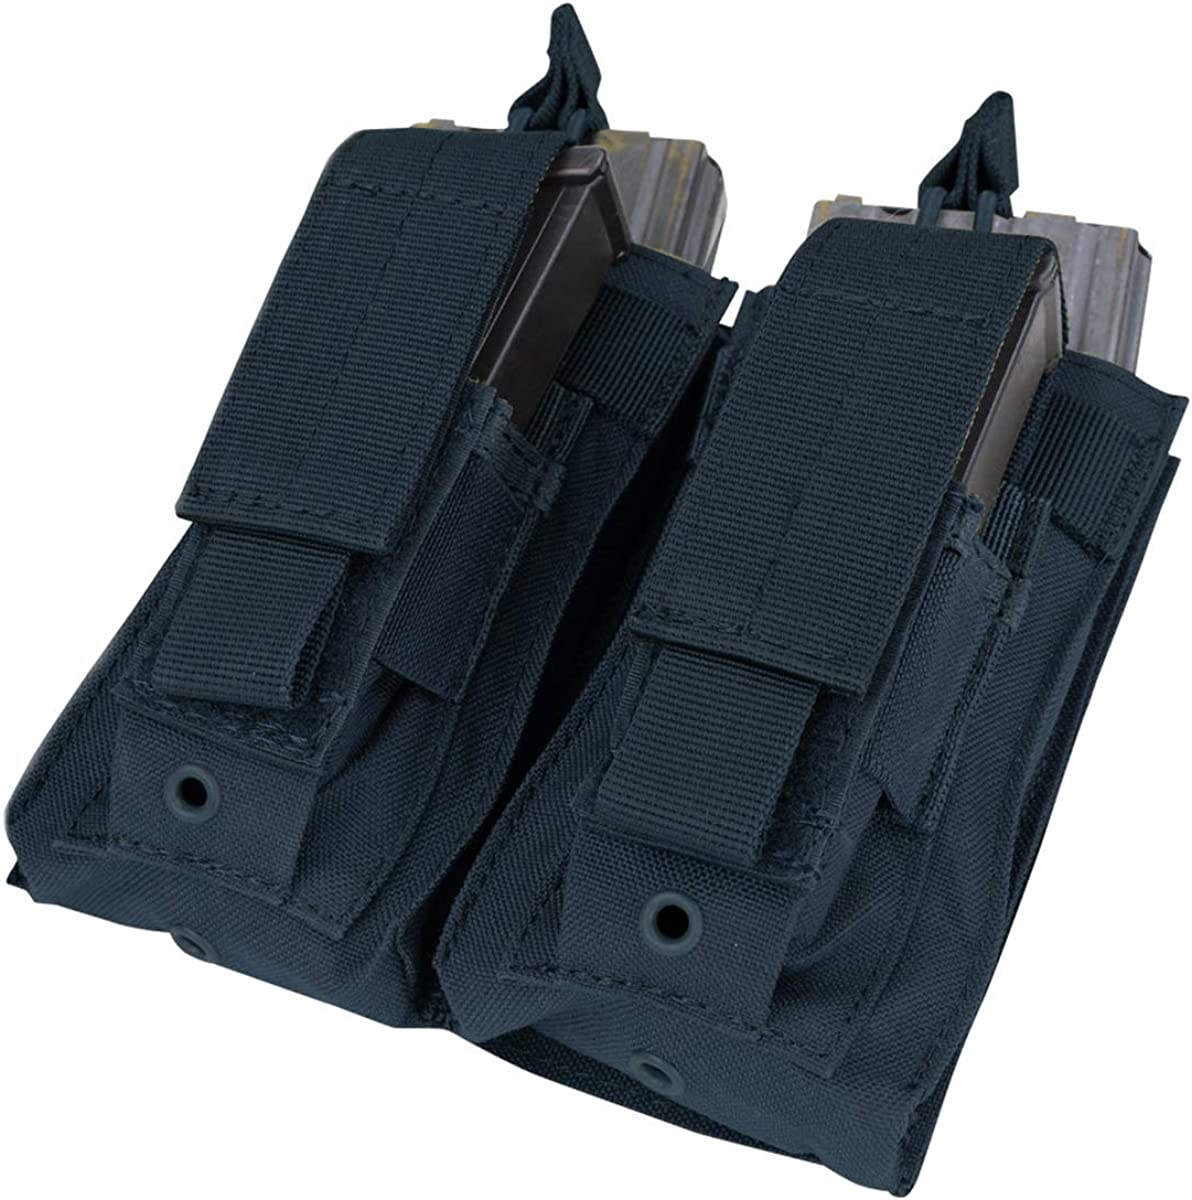 CONDOR MA51 Double 100% quality warranty! Kangaroo Magazine Pouch M16 Mag 2 M4 holds Limited time for free shipping